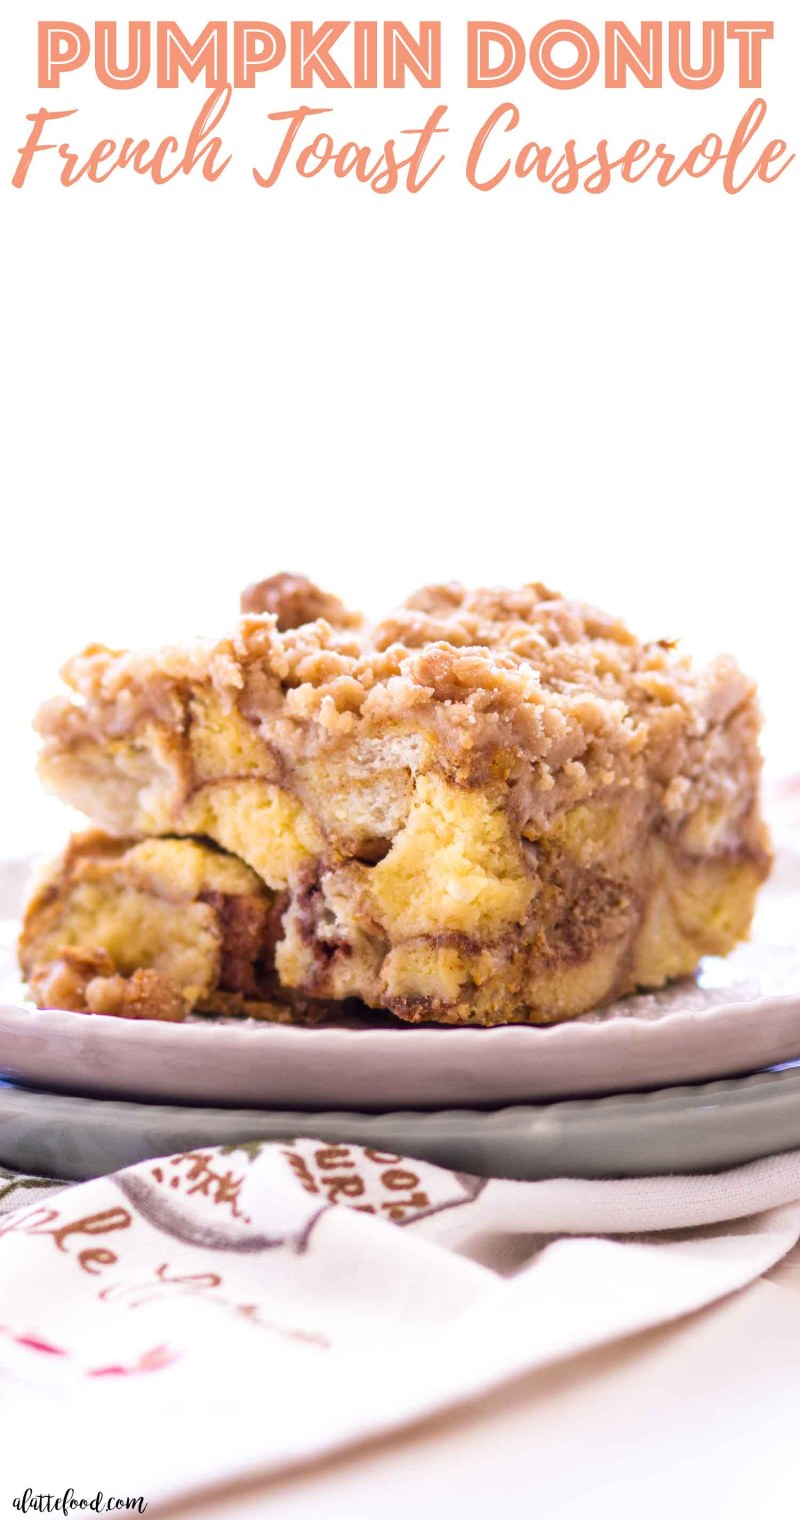 Donut French Toast Casserole with brown sugar streusel on a plate